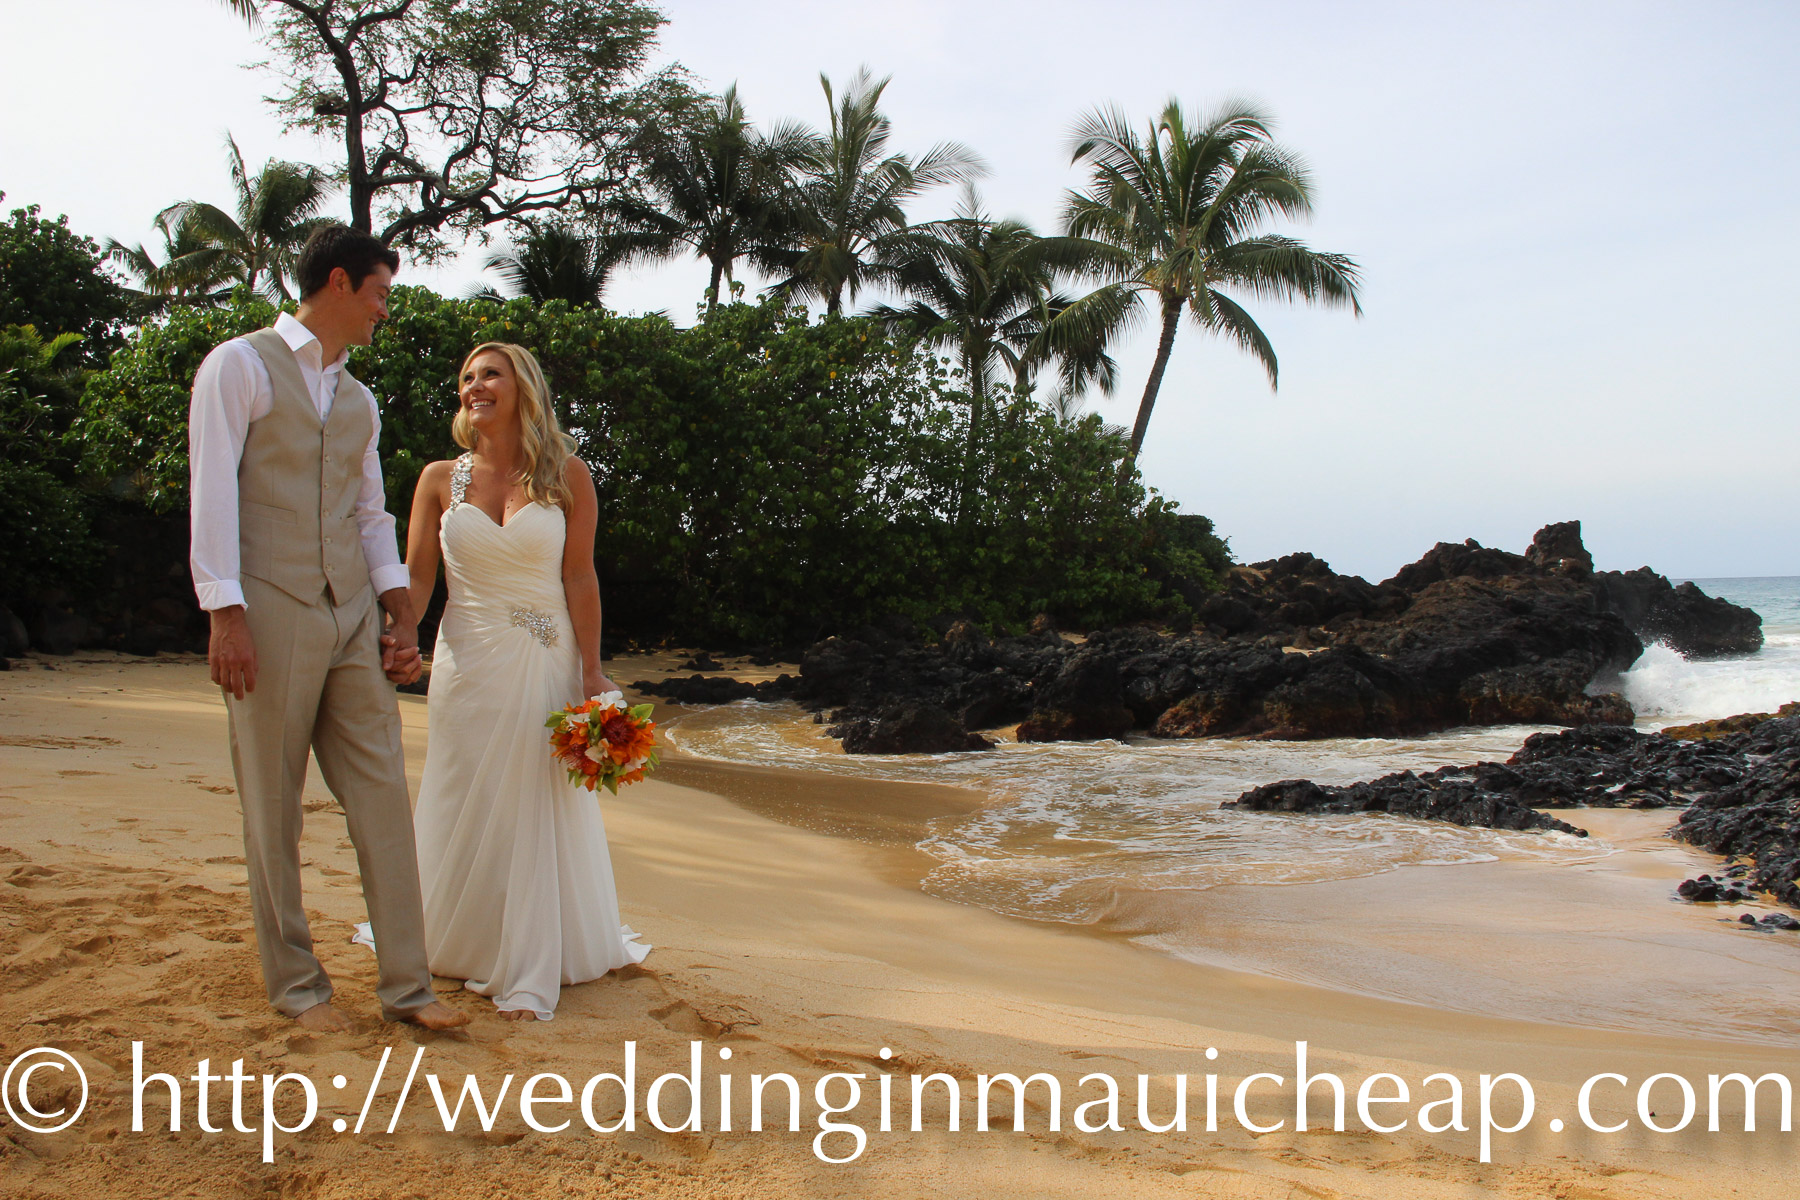 Our Hawaiian beach ceremony includes beautiful cheap Maui wedding packages. Brides tell us our simple Maui wedding packages are the best Maui wedding or Maui renewal value in Hawaii! Our goal is to create a simple, joy filled Hawaiian themed Wedding or Vow Renewal ceremony that will far exceed your expectations. And because we are family owned and operated, we can offer you an affordable, cheap, Maui weddings and renewals!